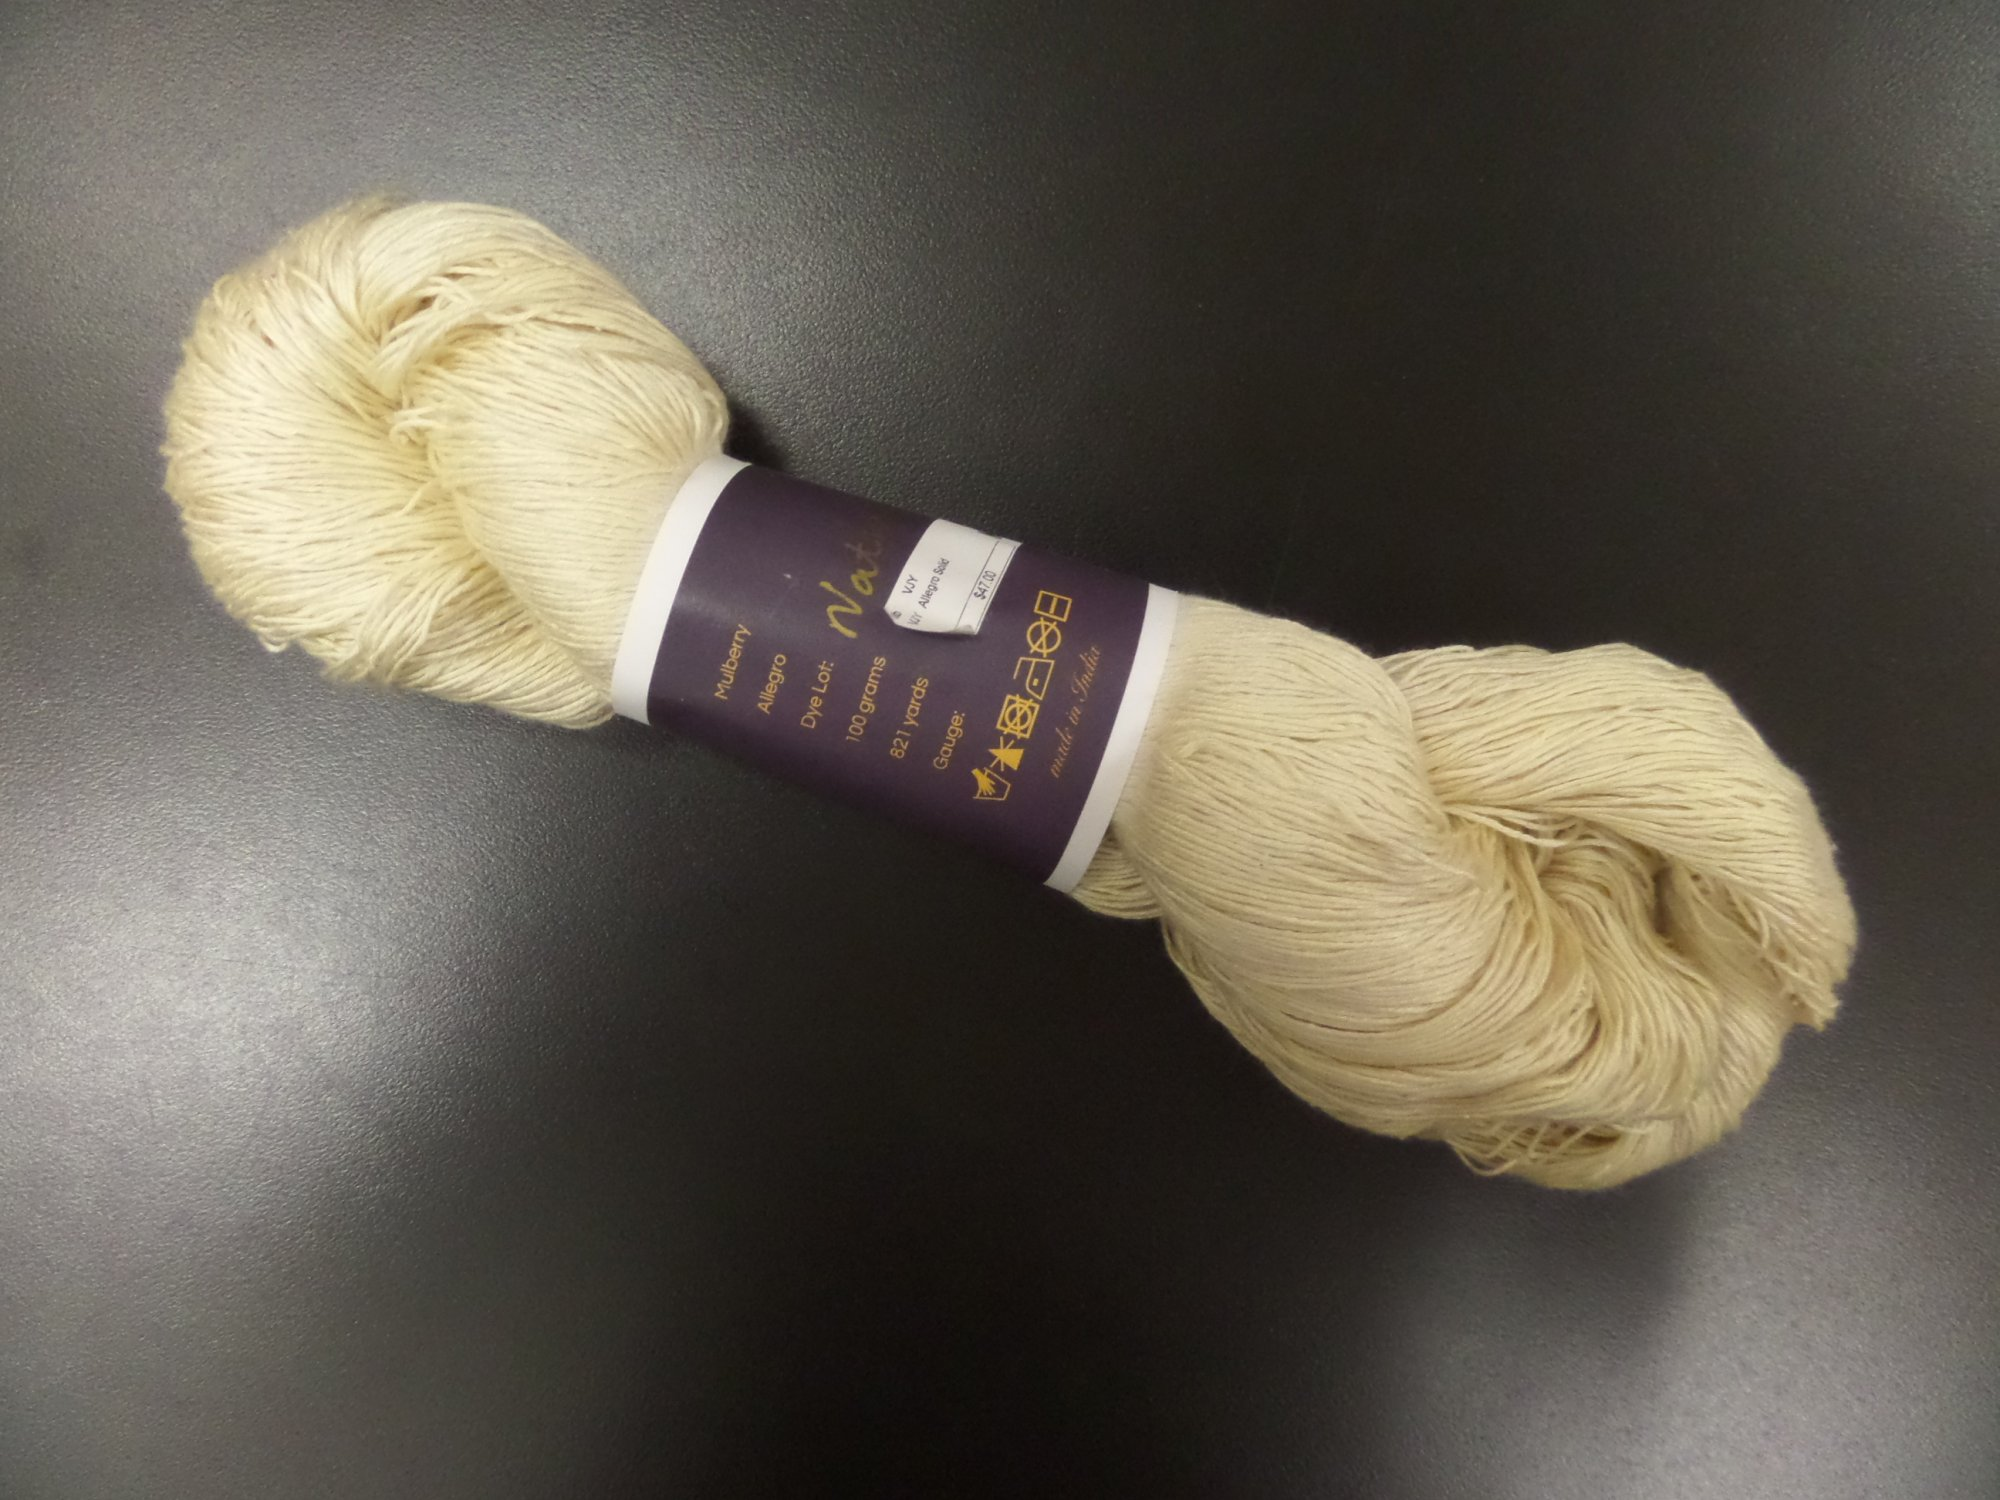 Allegro Solid yarn by Vijay Fibers